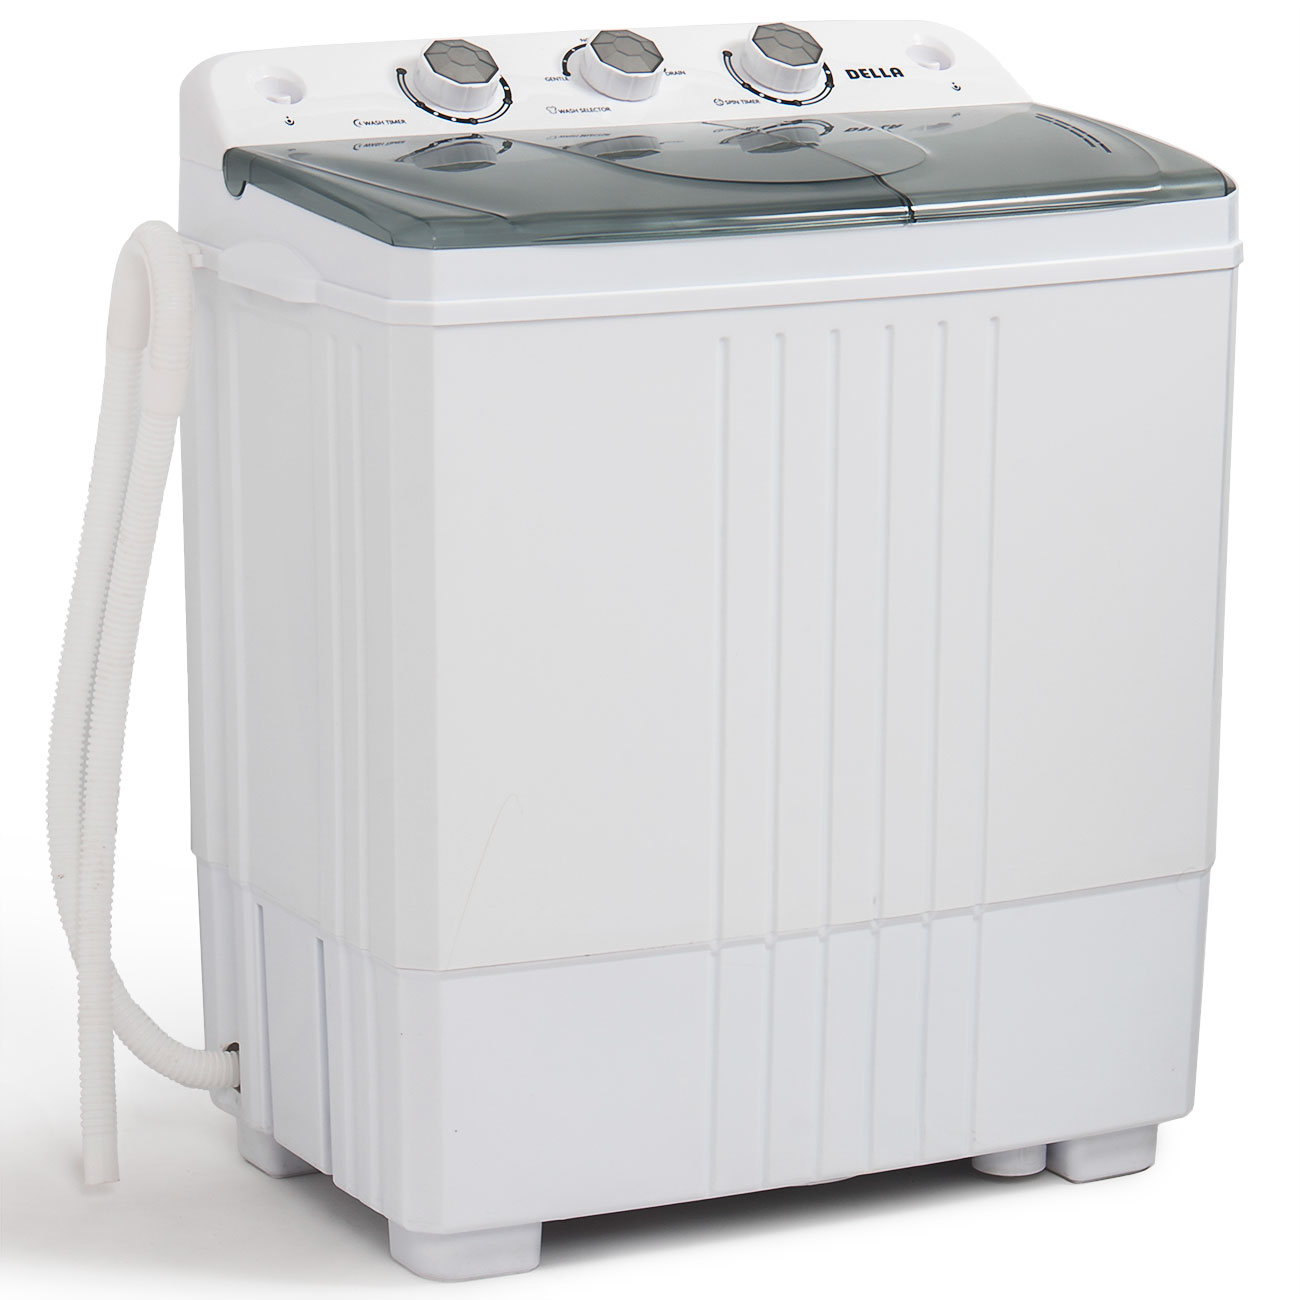 Mini Washing Machine ~ Portable mini washing machine compact twin tub lb washer